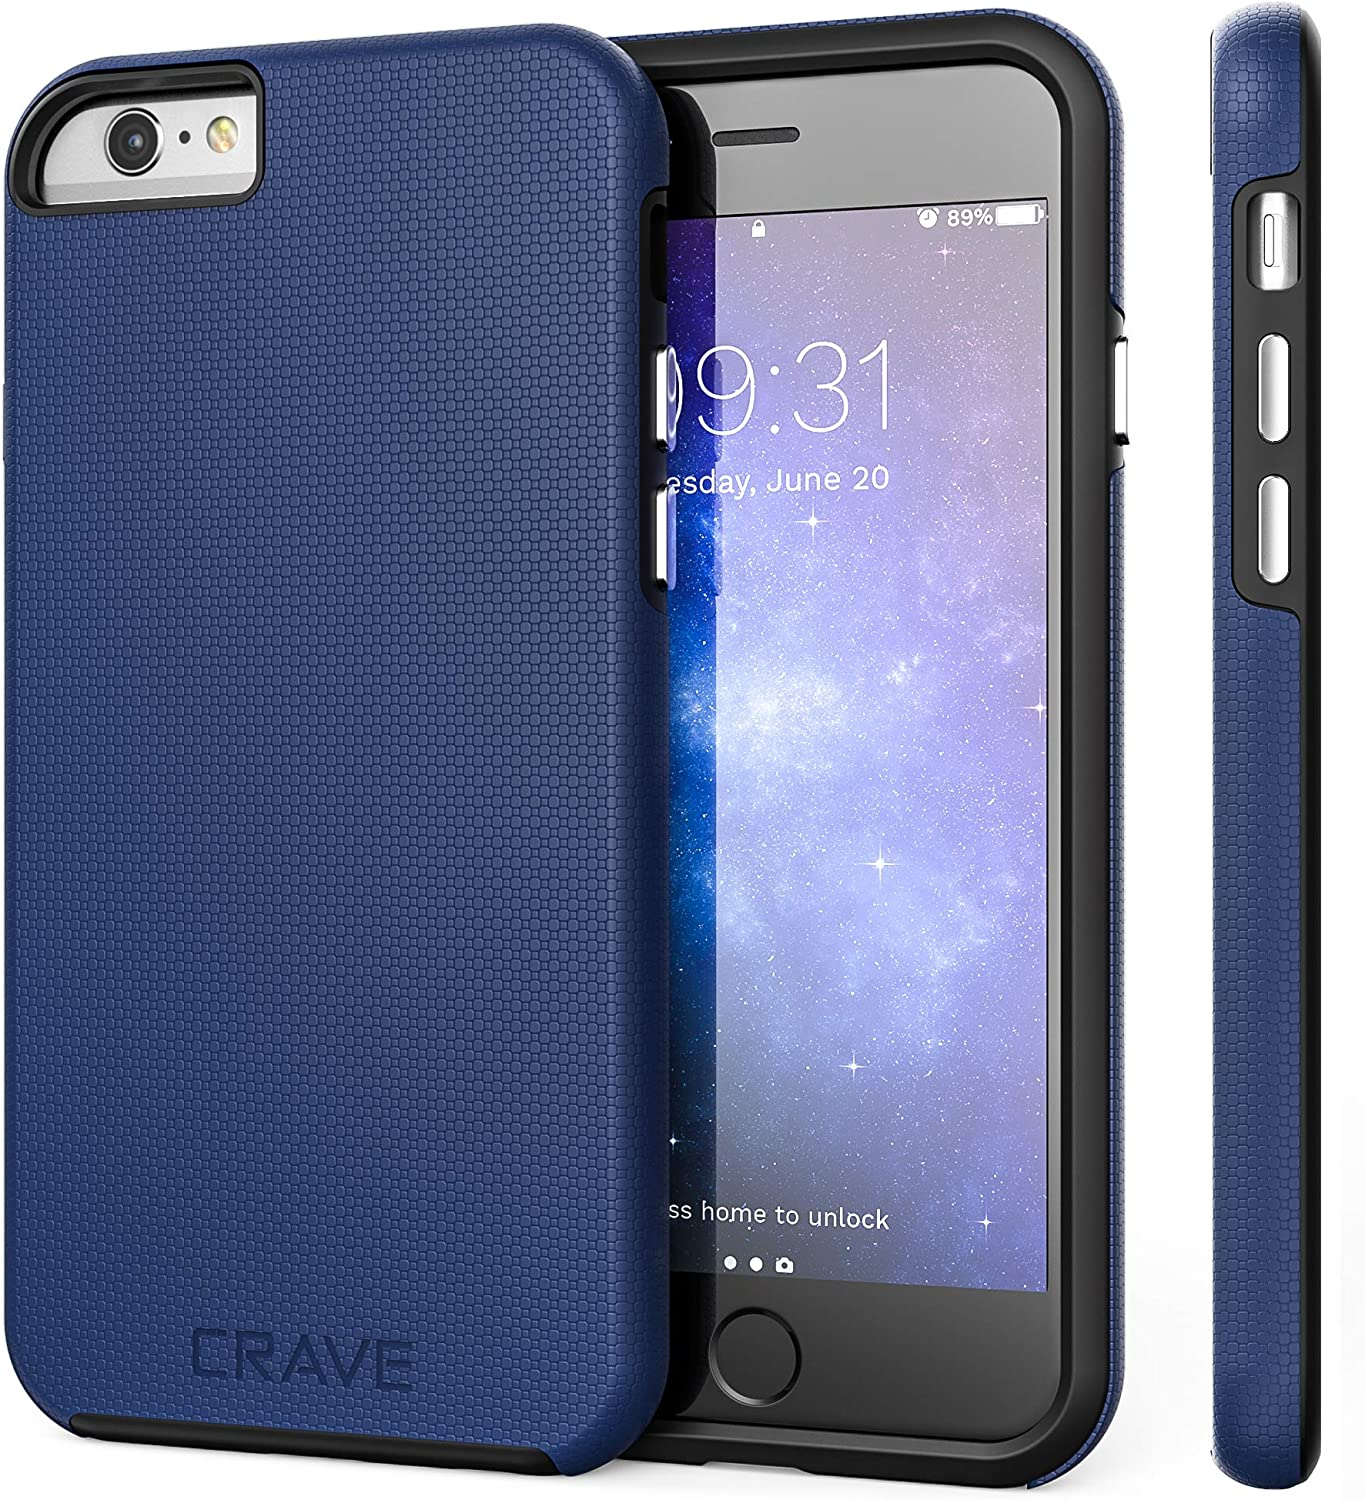 iPhone 6 Case, iPhone 6S Case, Crave Dual Guard Protection Series Case for iPhone 6 6s (4.7 Inch) - Navy Blue